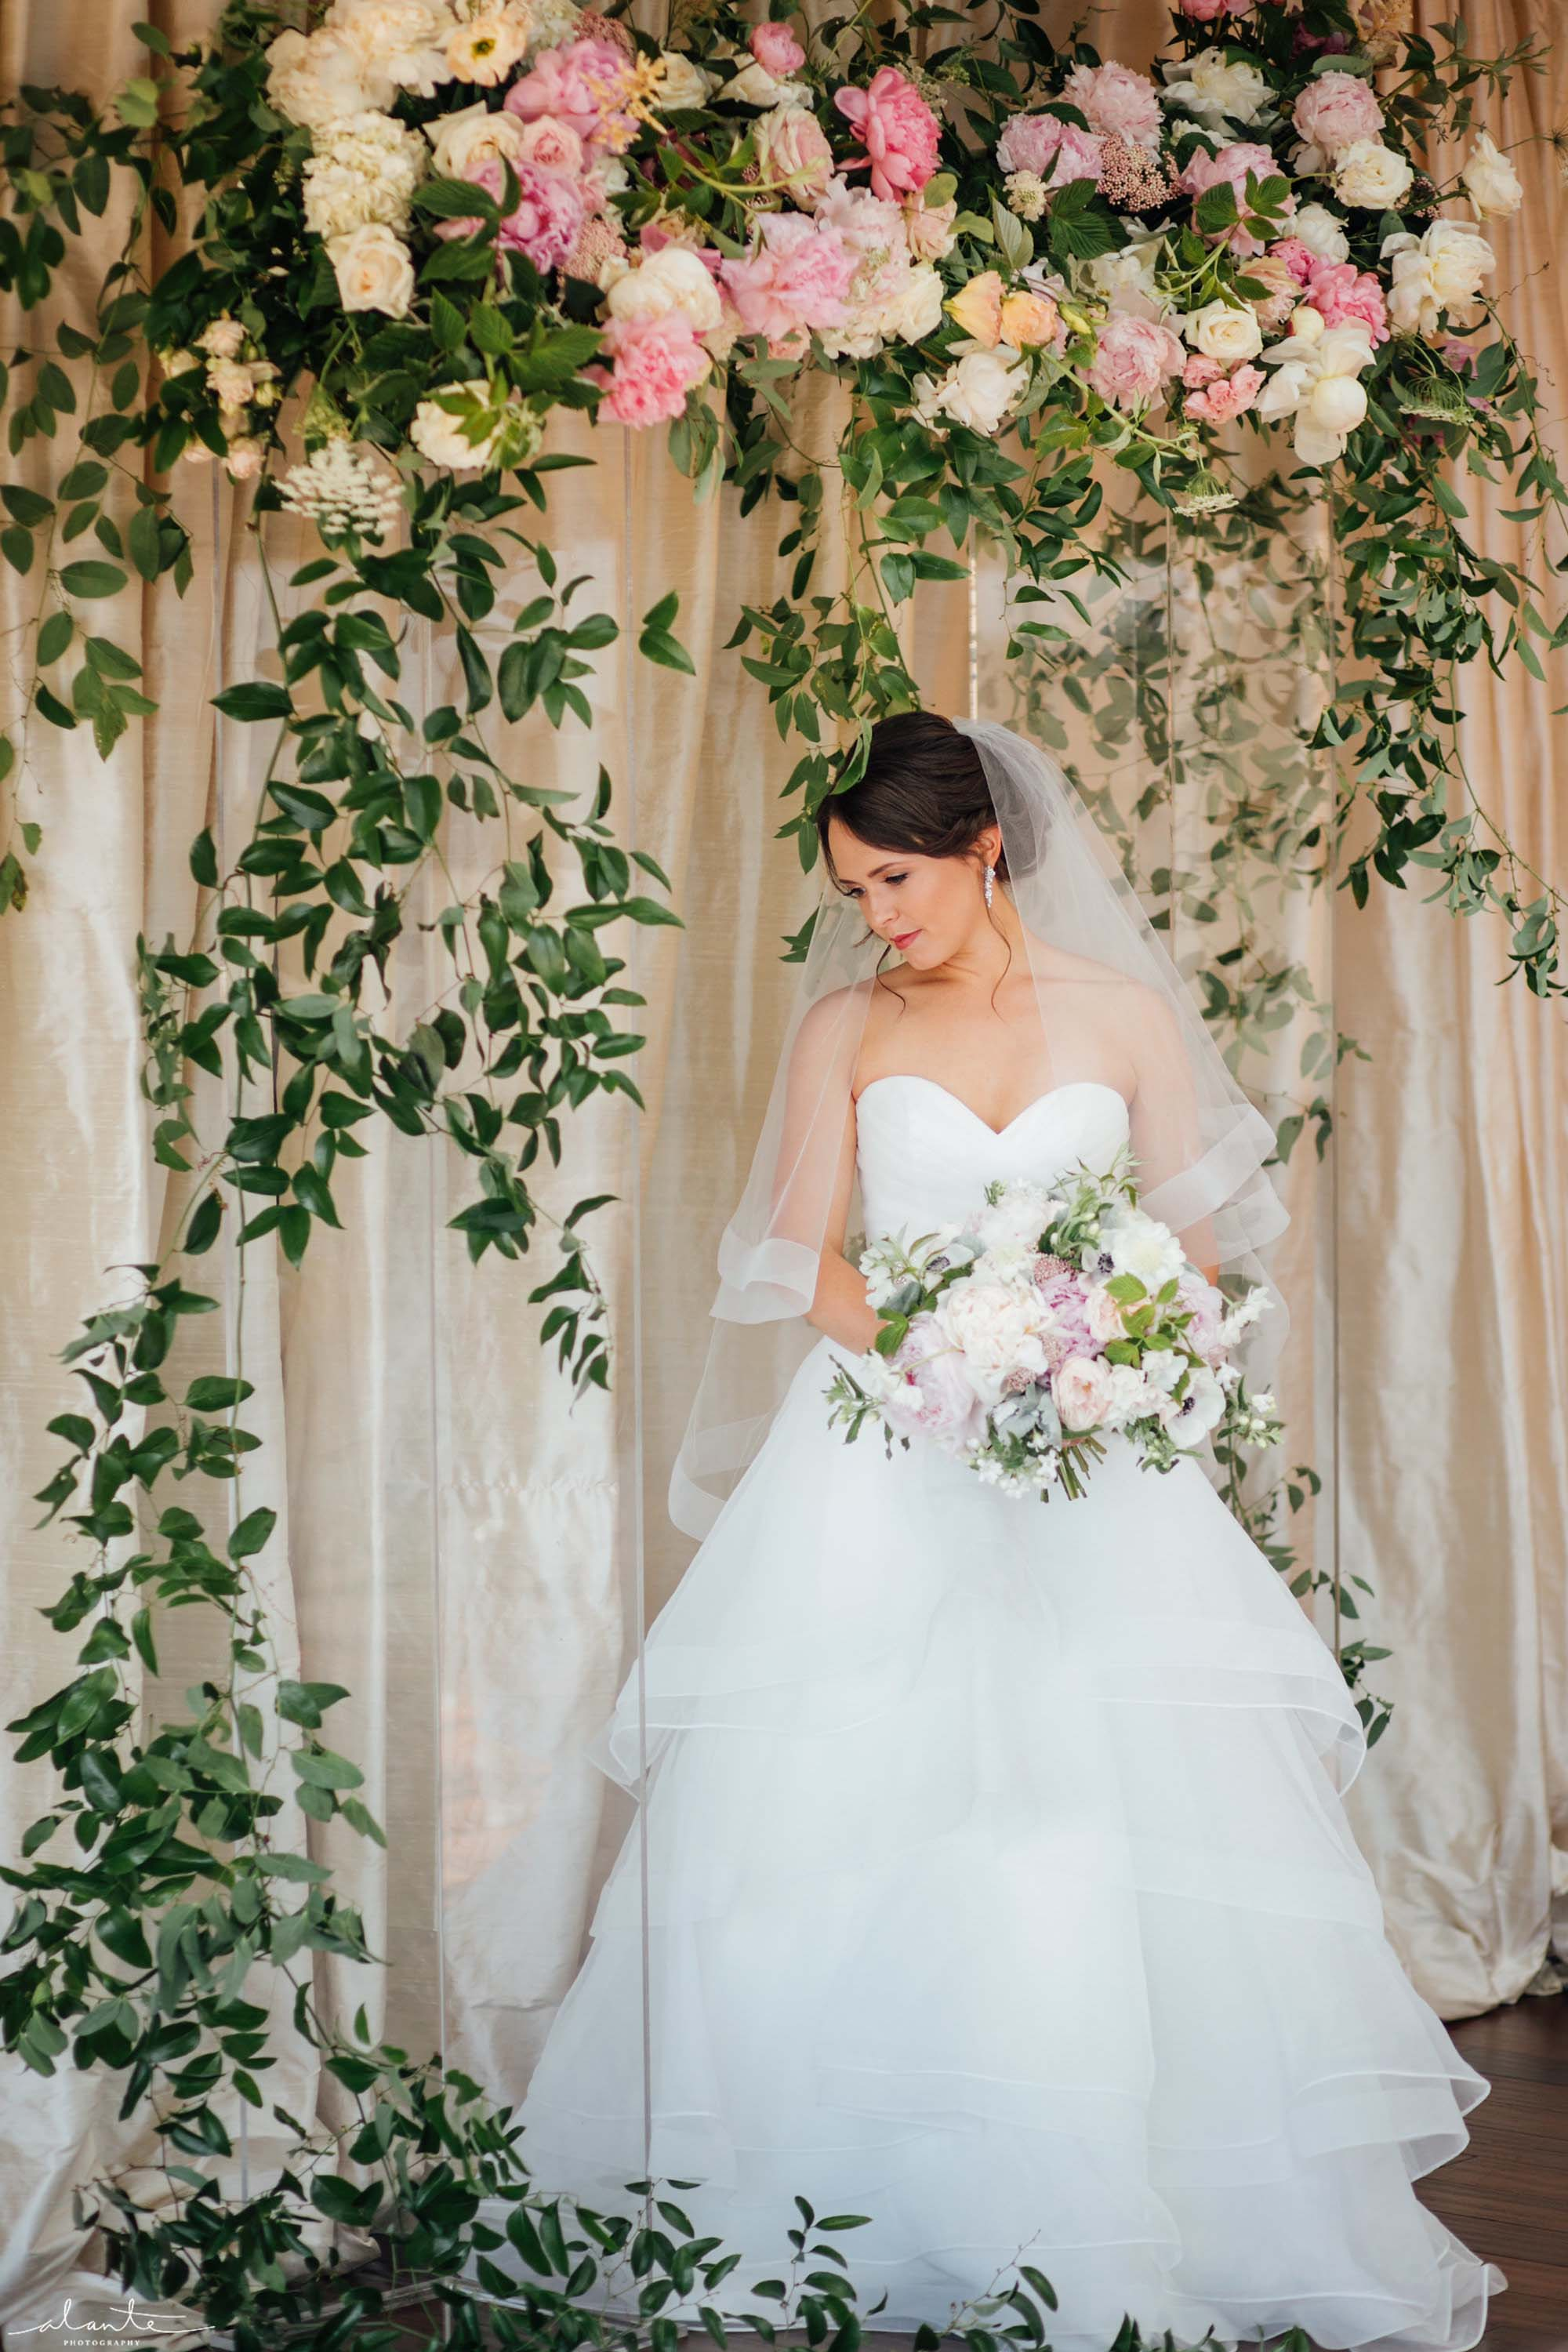 Bride under a lucite wedding arch, Olympic Rooftop Pavilion wedding with pink peonies by Flora Nova Design Seattle